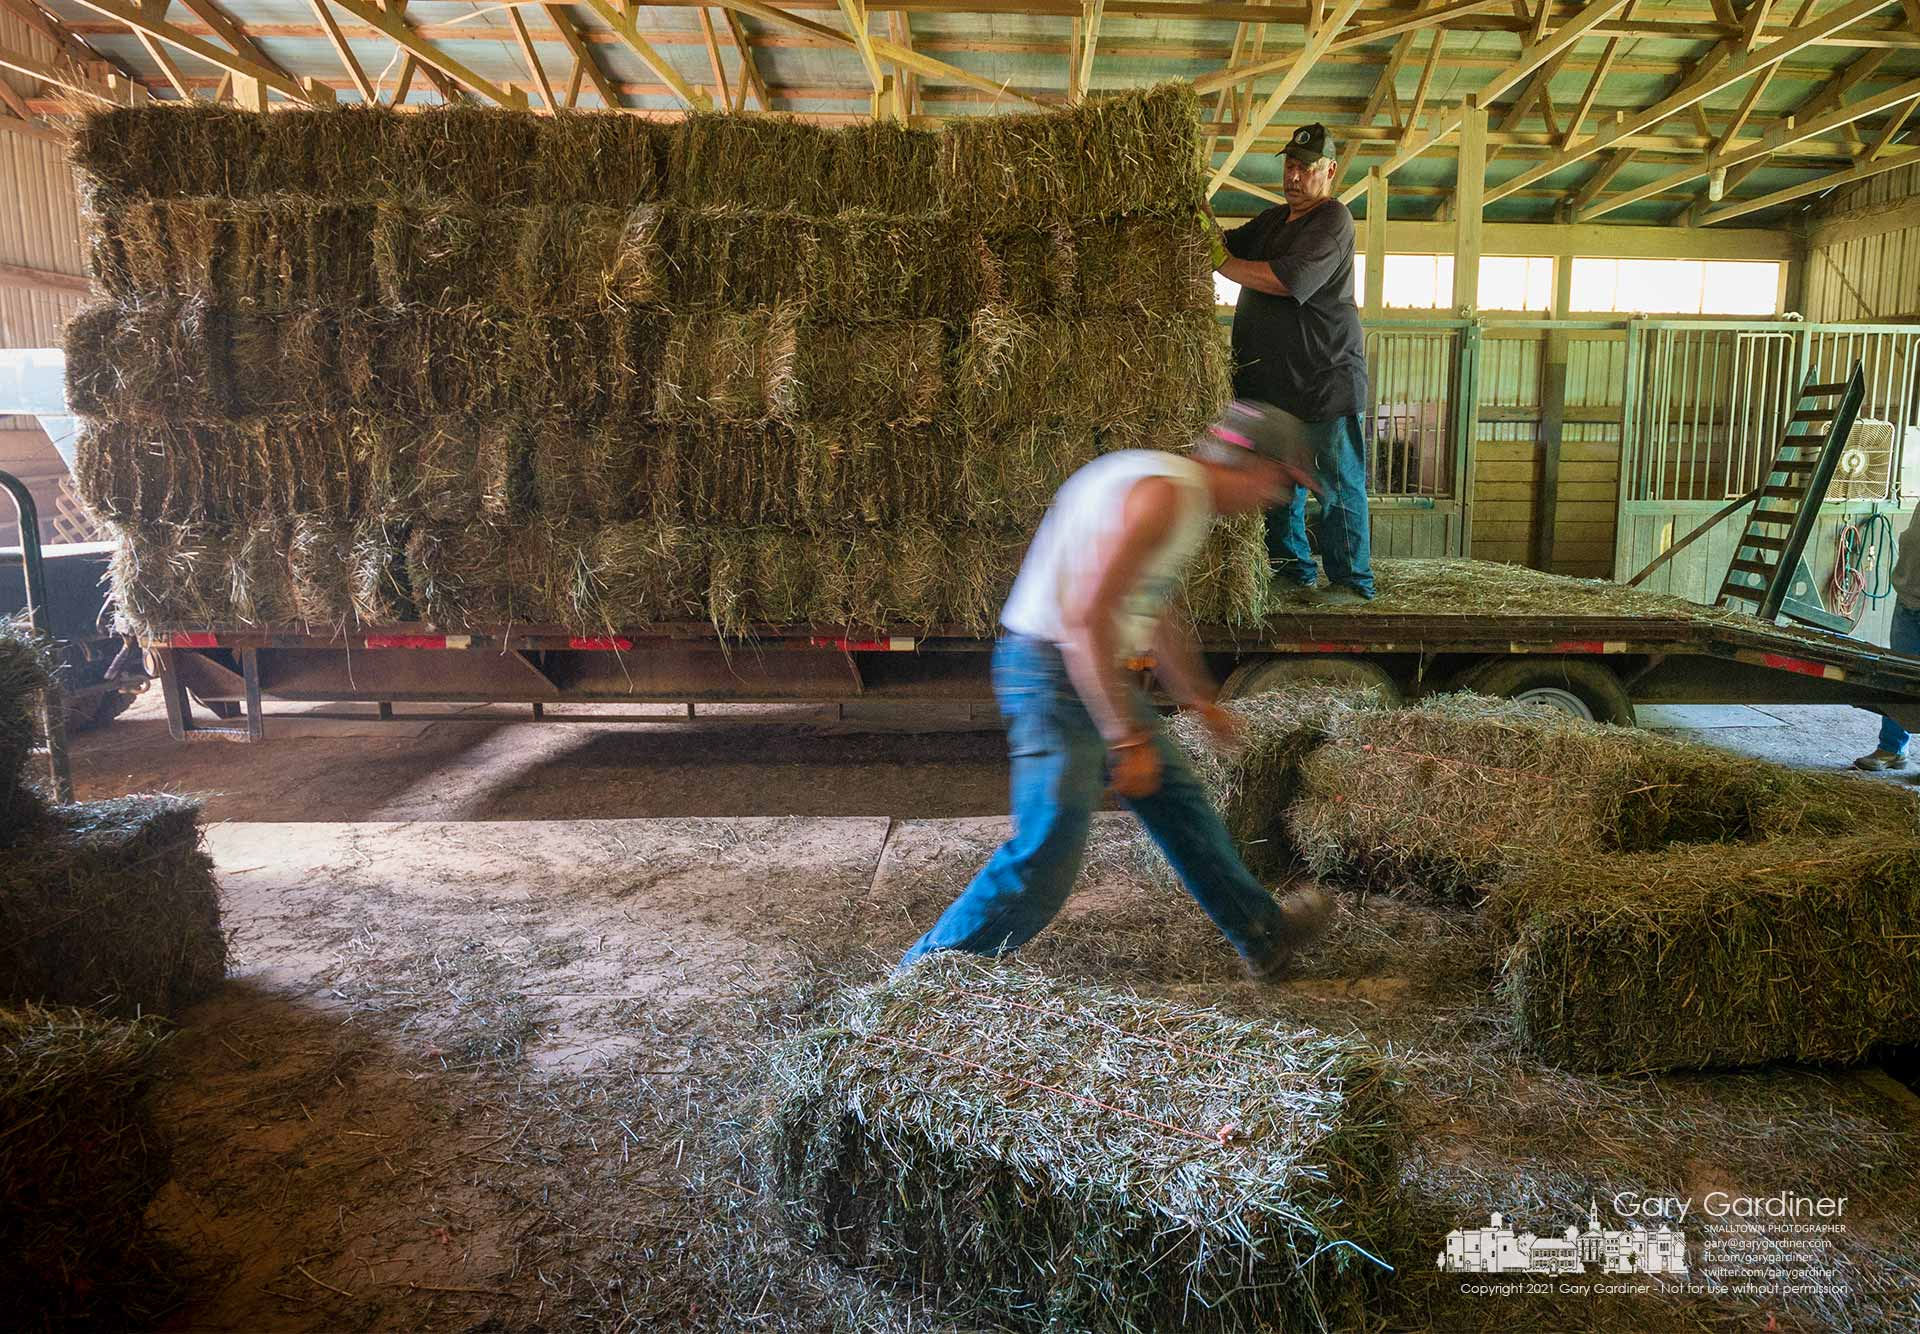 Rodney Parker and Kevin Scott deliver a wagon of hay to a horse barn near Croton, Ohio. My Final Photo for Sept. 2, 2021